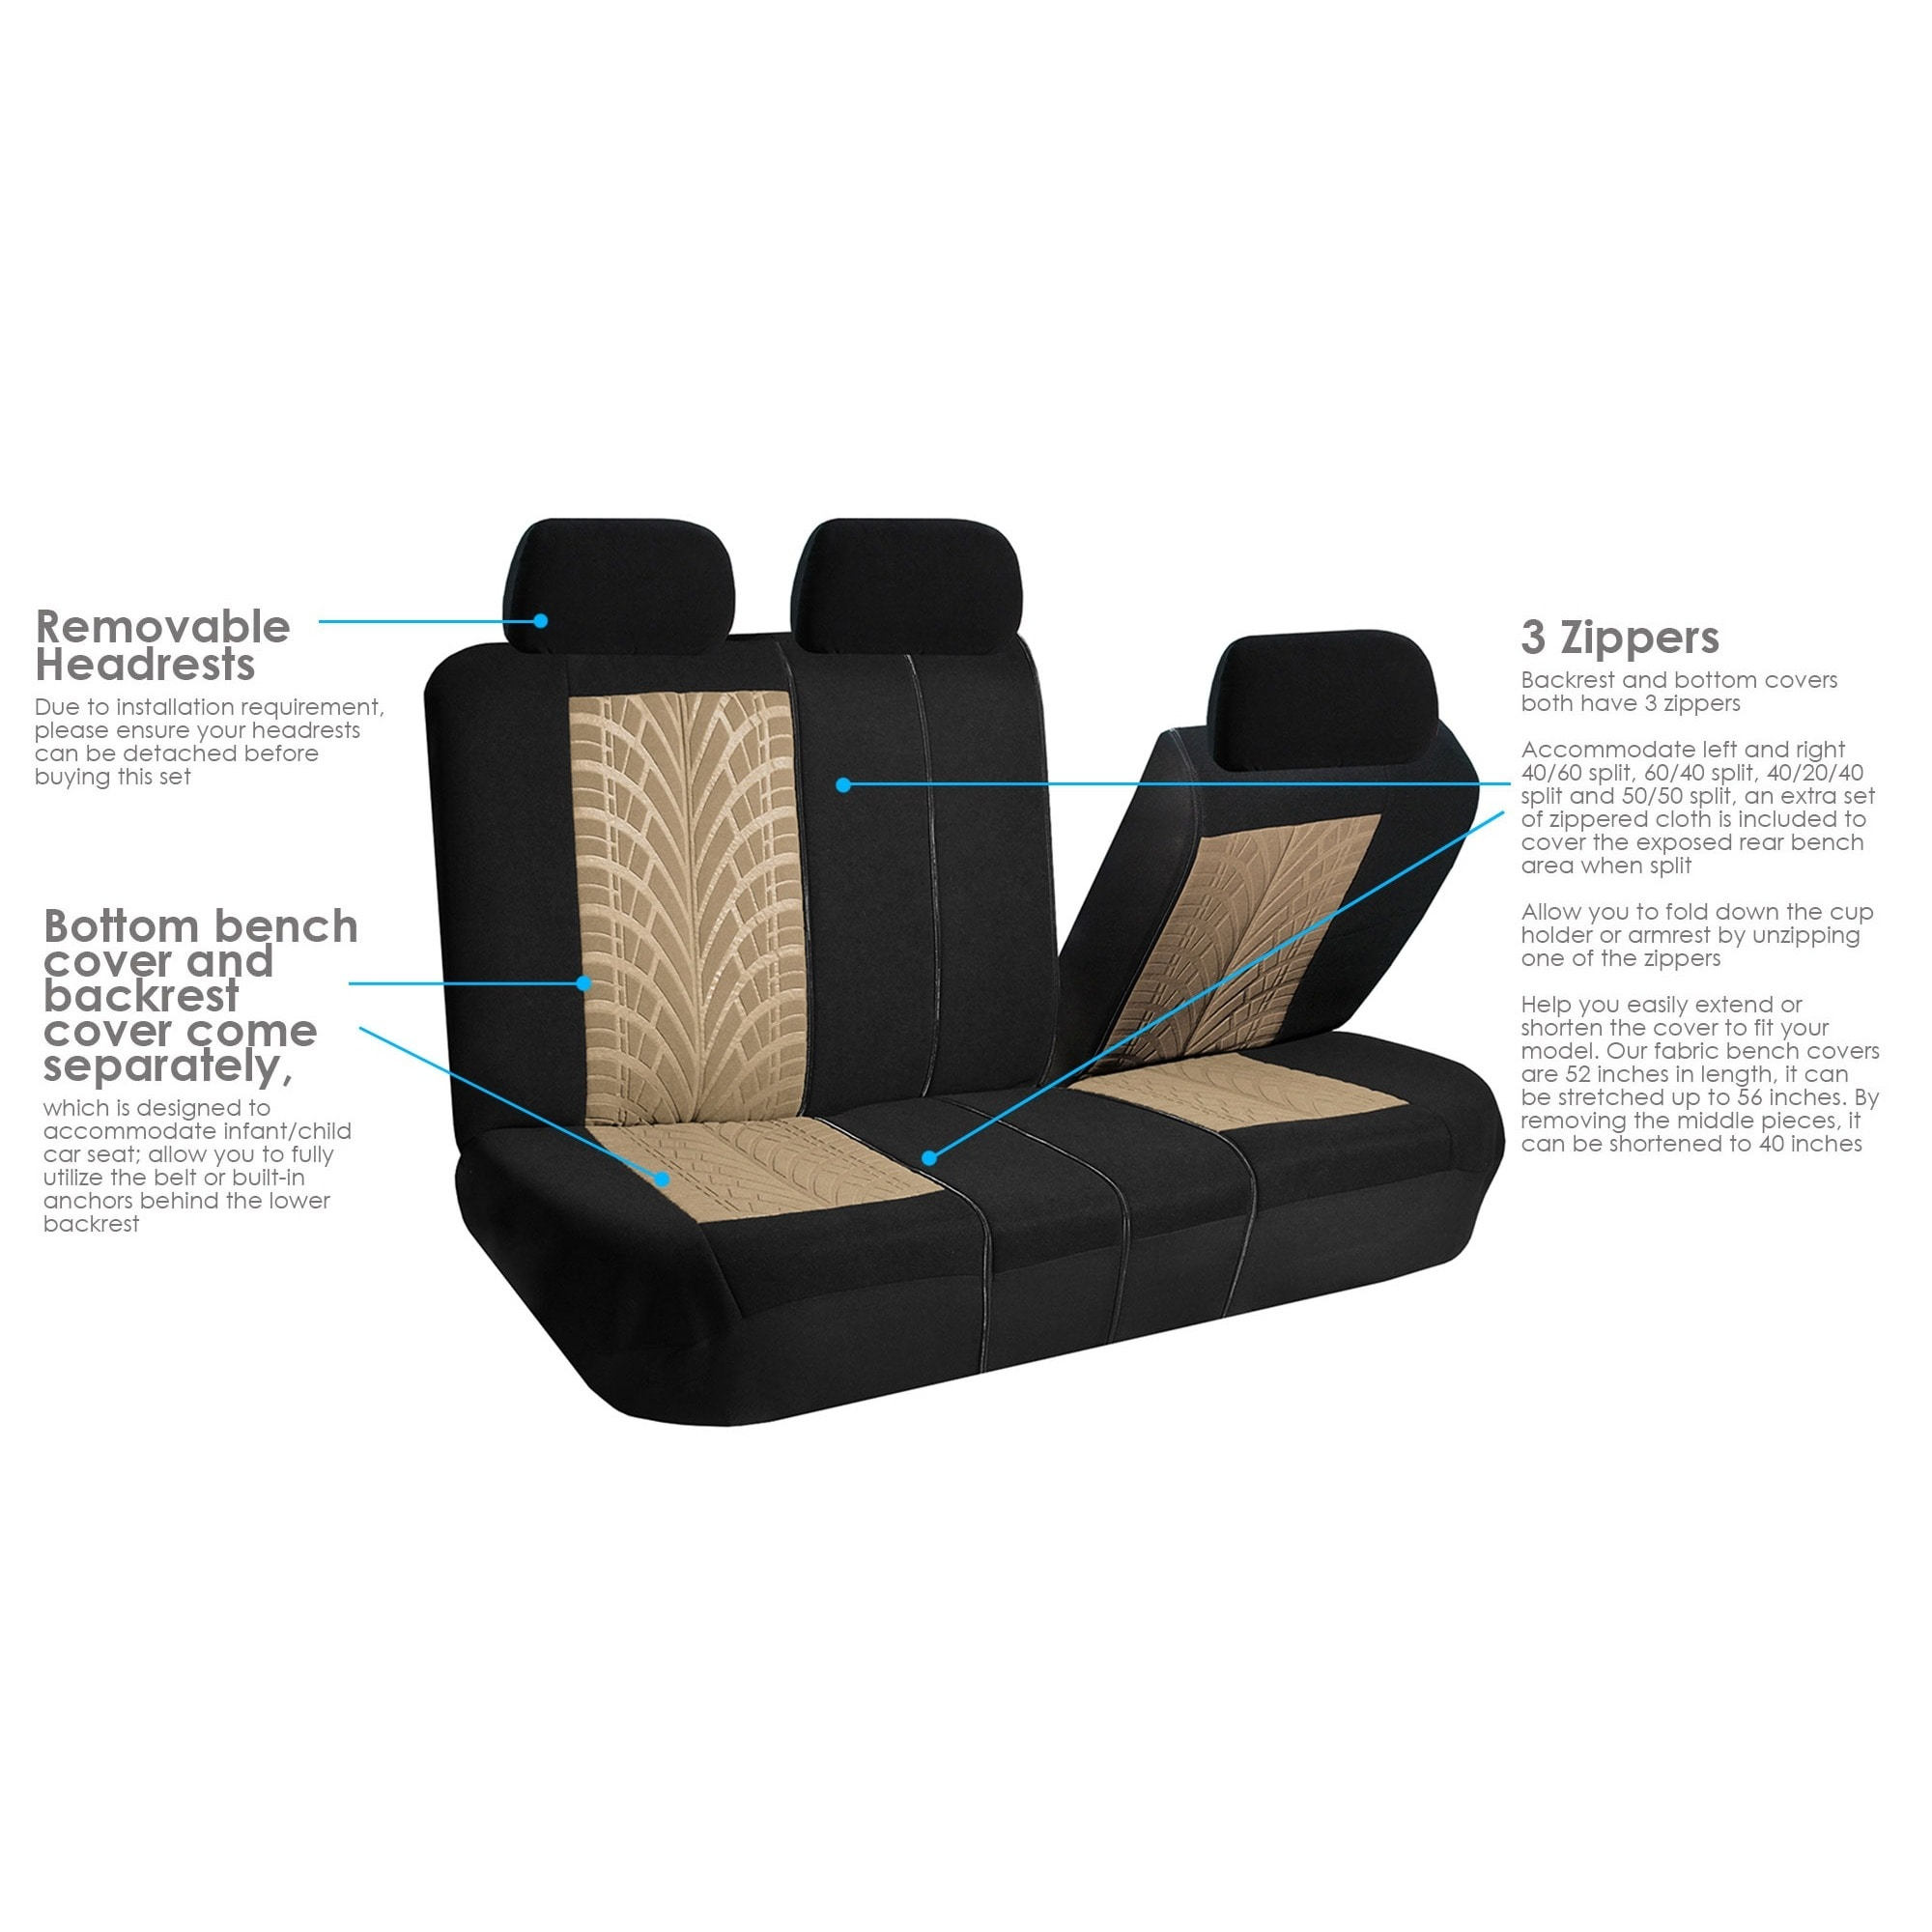 Pleasant Fh Group Fabric Seat Covers 40 60 50 50 Interior Caraccident5 Cool Chair Designs And Ideas Caraccident5Info